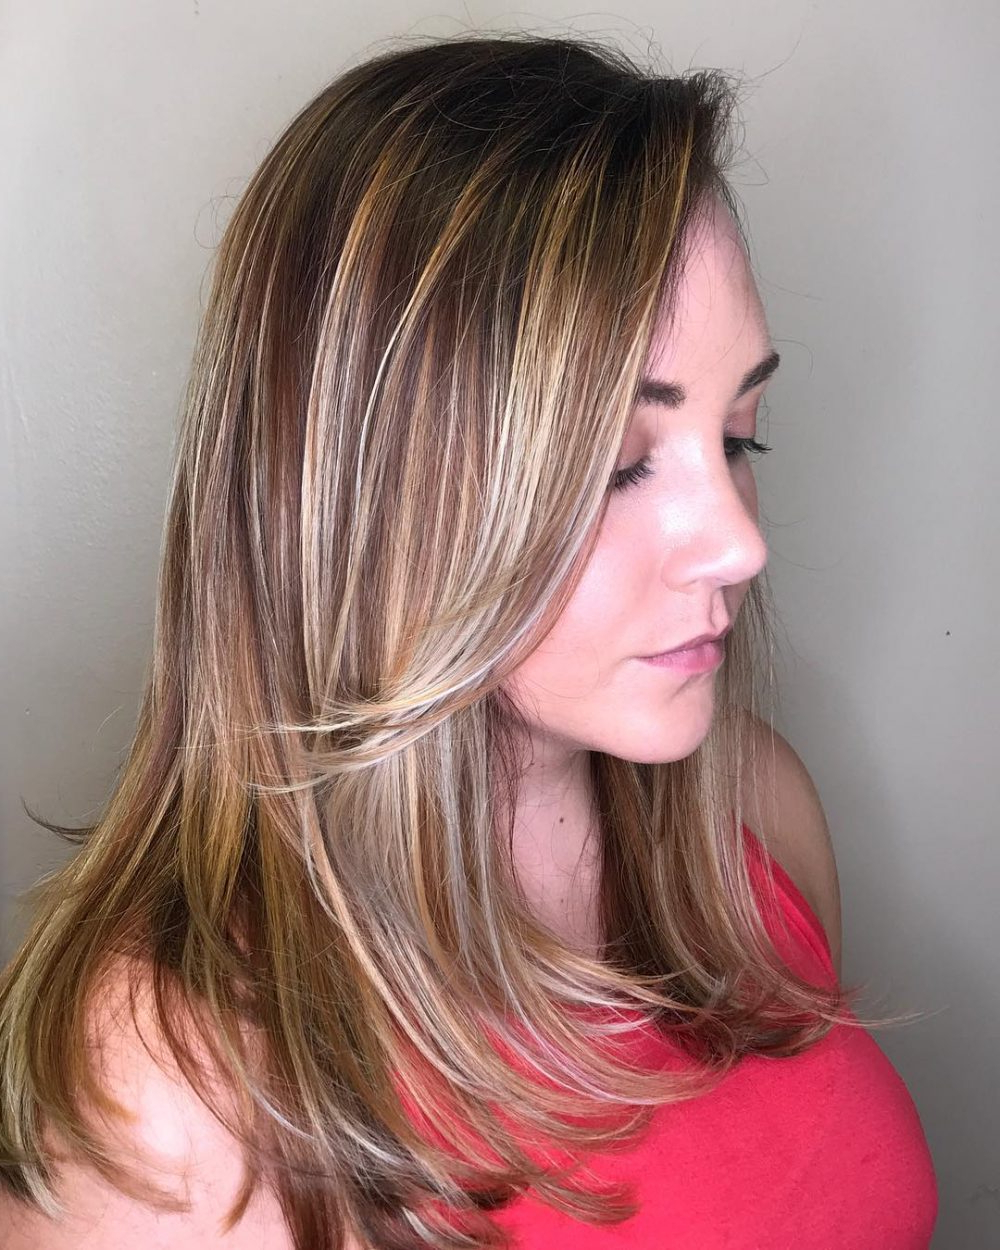 19 Cutest Side Bangs Hairstyle Ideas For 2018 Inside Short Haircuts With Long Side Bangs (View 8 of 25)